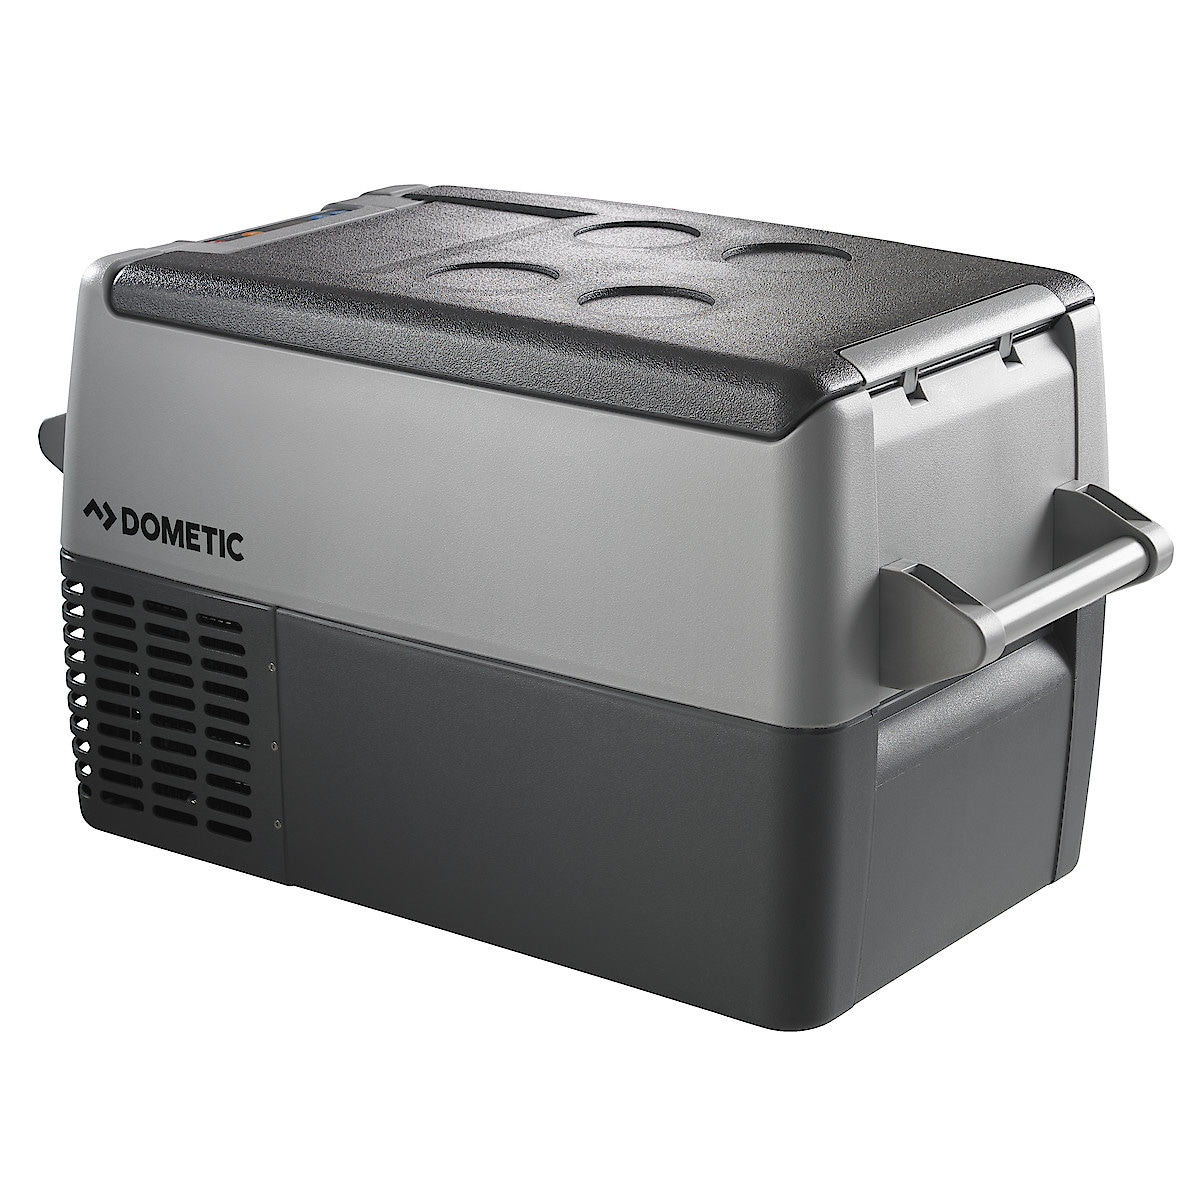 Kylbox 12/230 V Dometic CoolFreeze CF 35